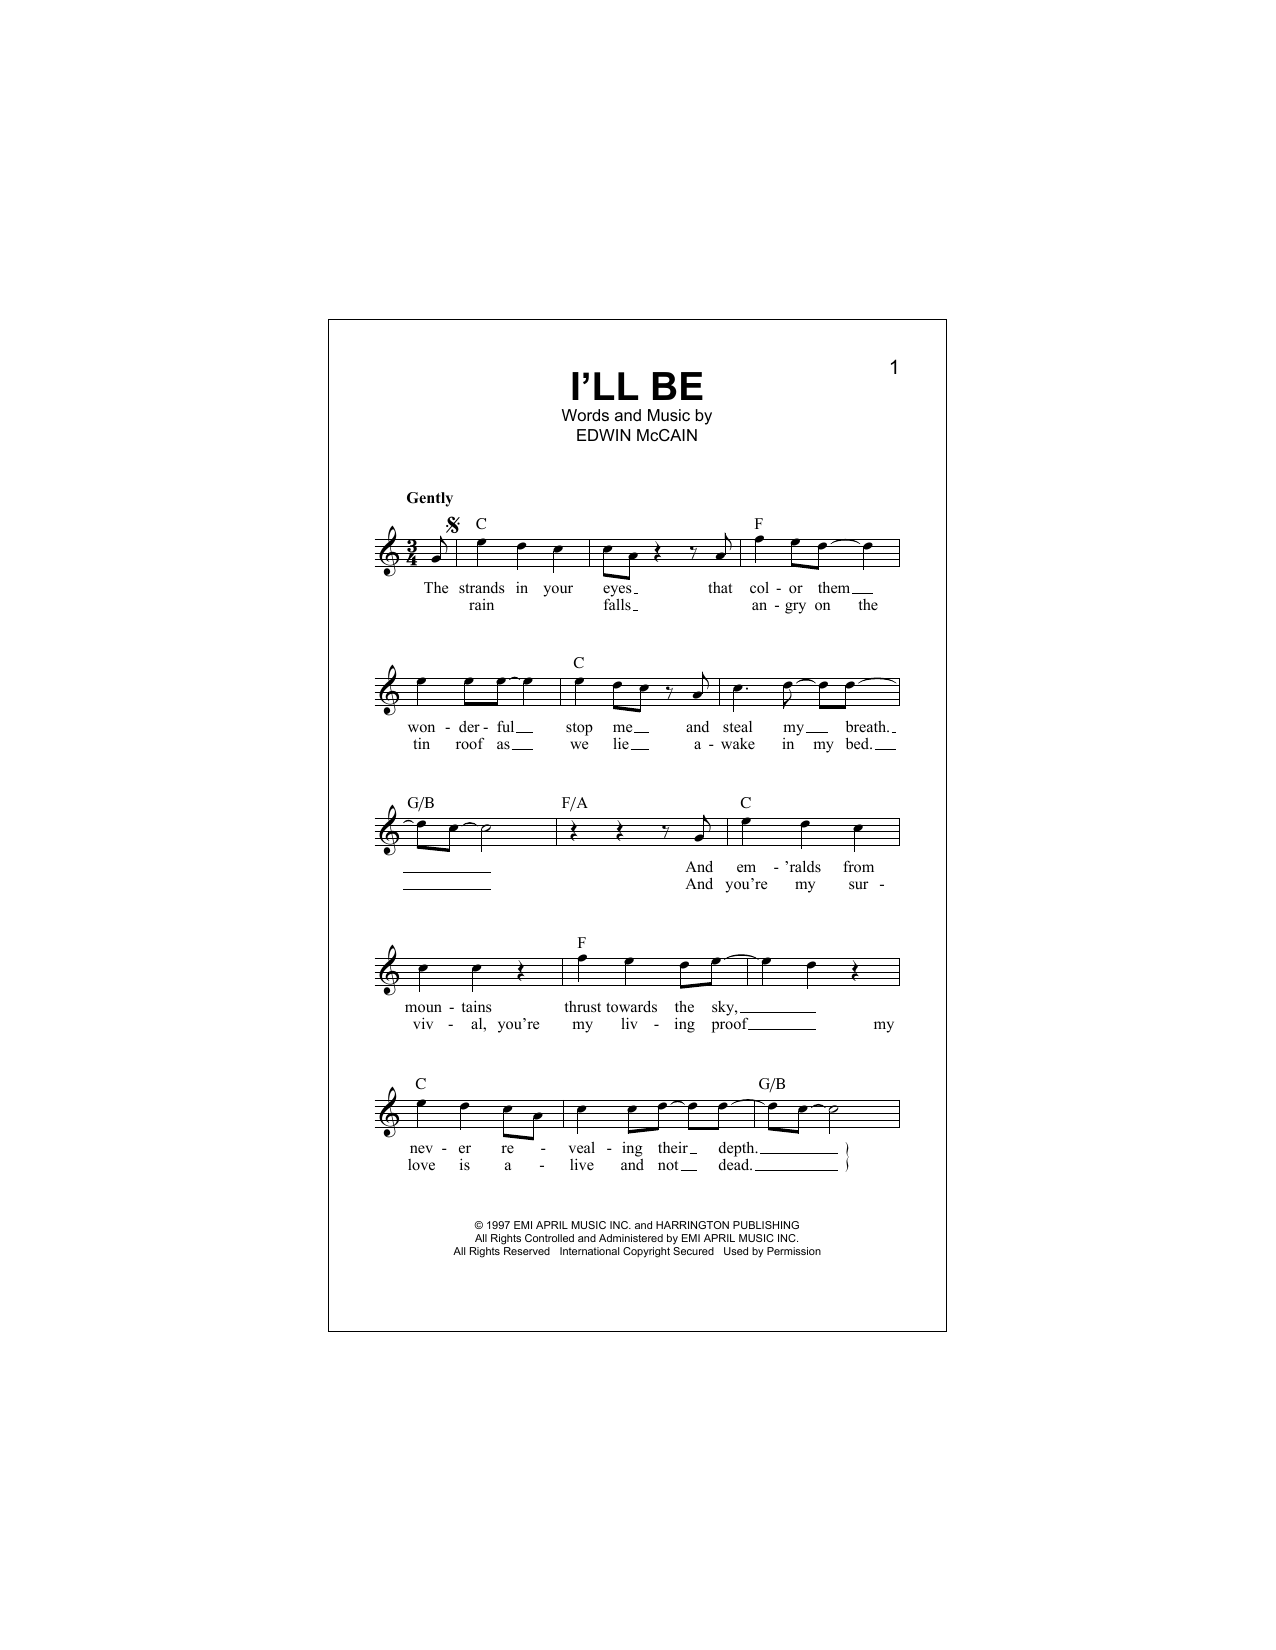 Edwin Mccain Ill Be Sheet Music Notes Chords Printable Ballad